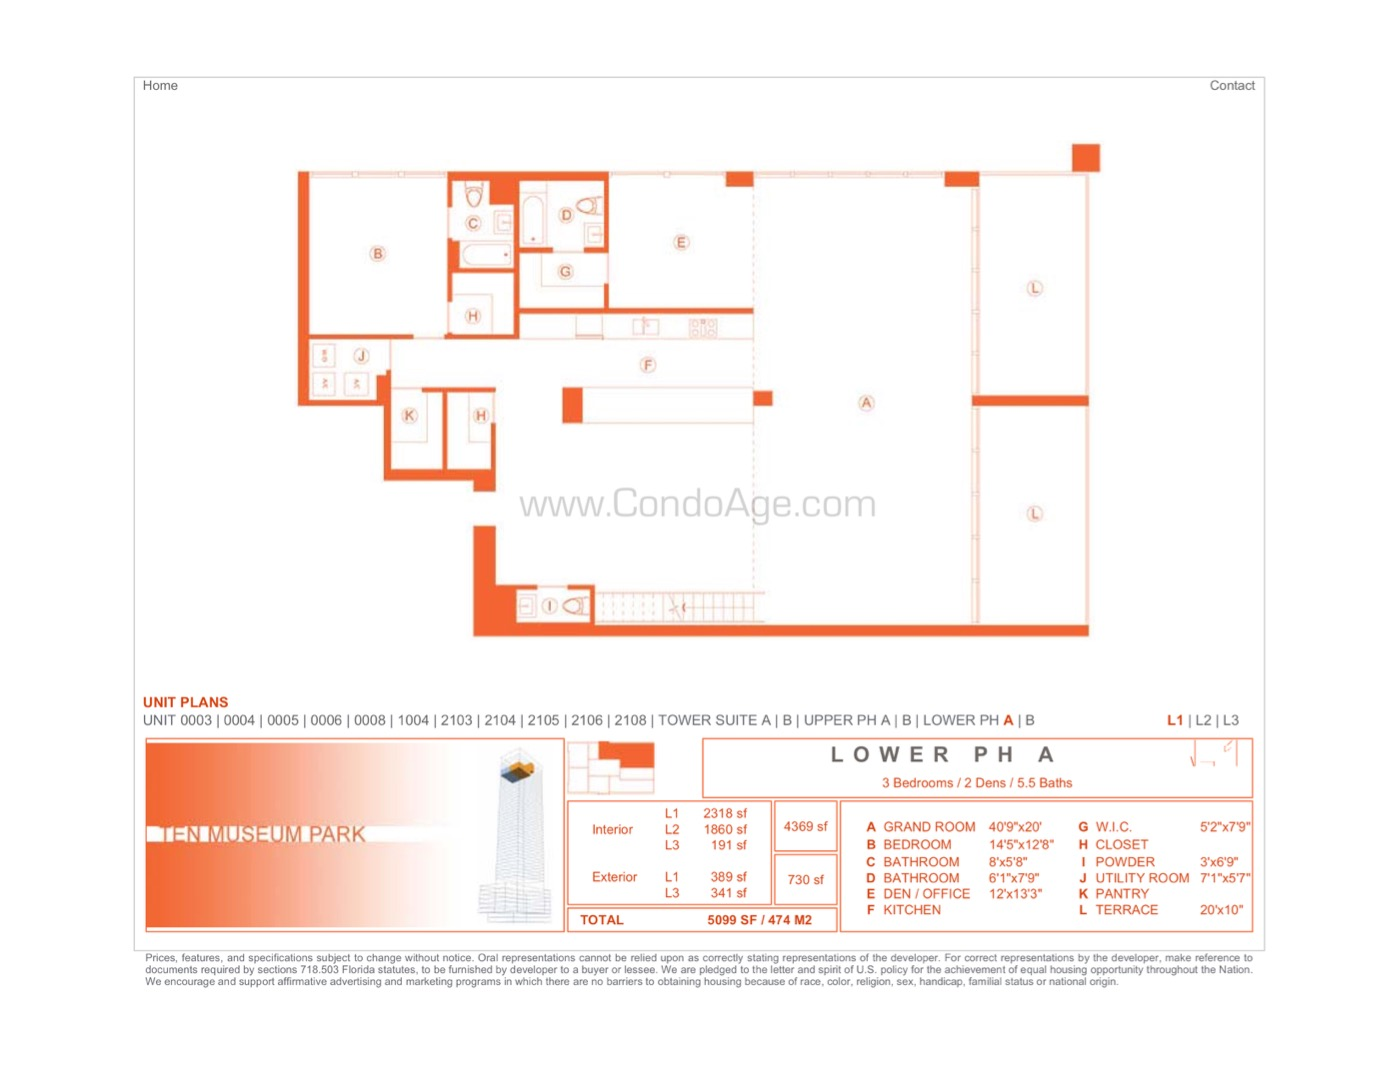 Floor plan image LPHA - 5/5/2  - 4369 sqft image